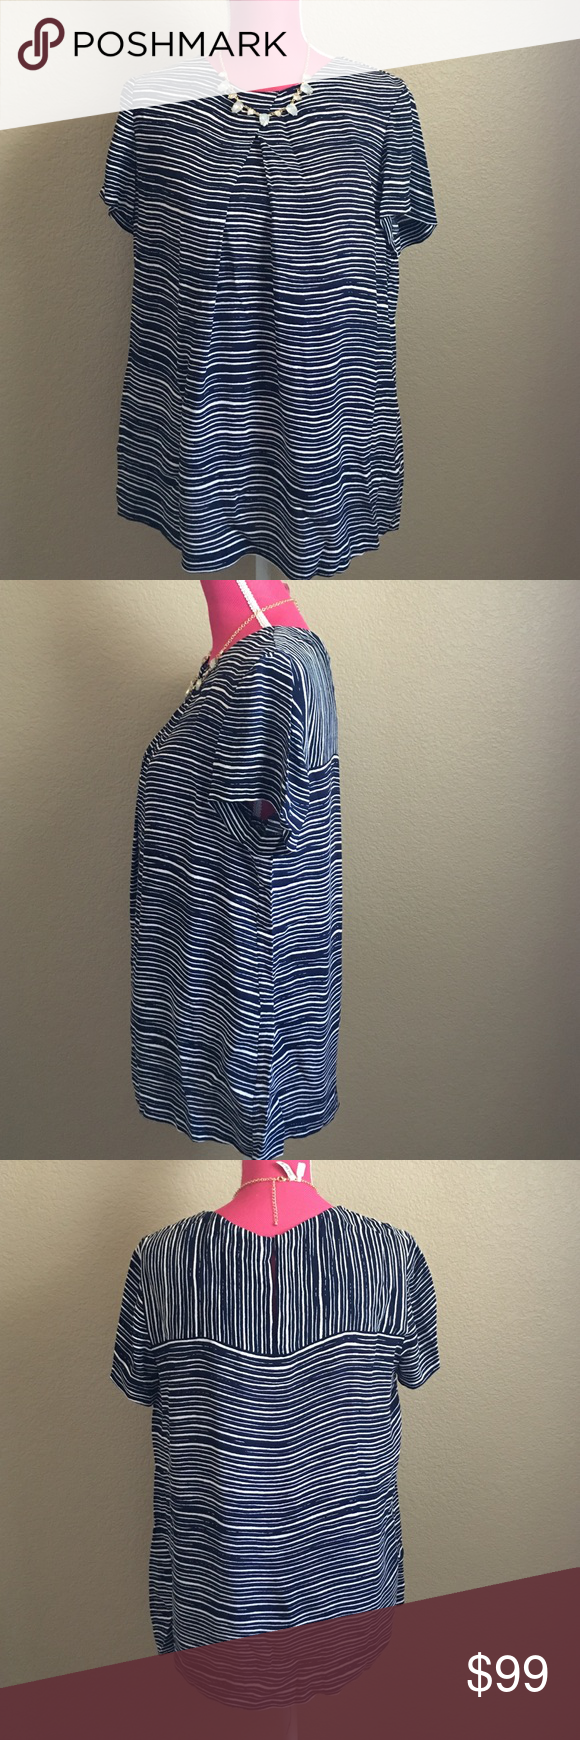 L.K.Bennett pleated stripe blouse Lovely blouse in a blue and white stripe. Soft. Pleat in front. Key hole detail in the back. Brand new. From nordstrom. Offers welcome through offer tab. No trades. 10719161201 LK Bennett Tops Blouses